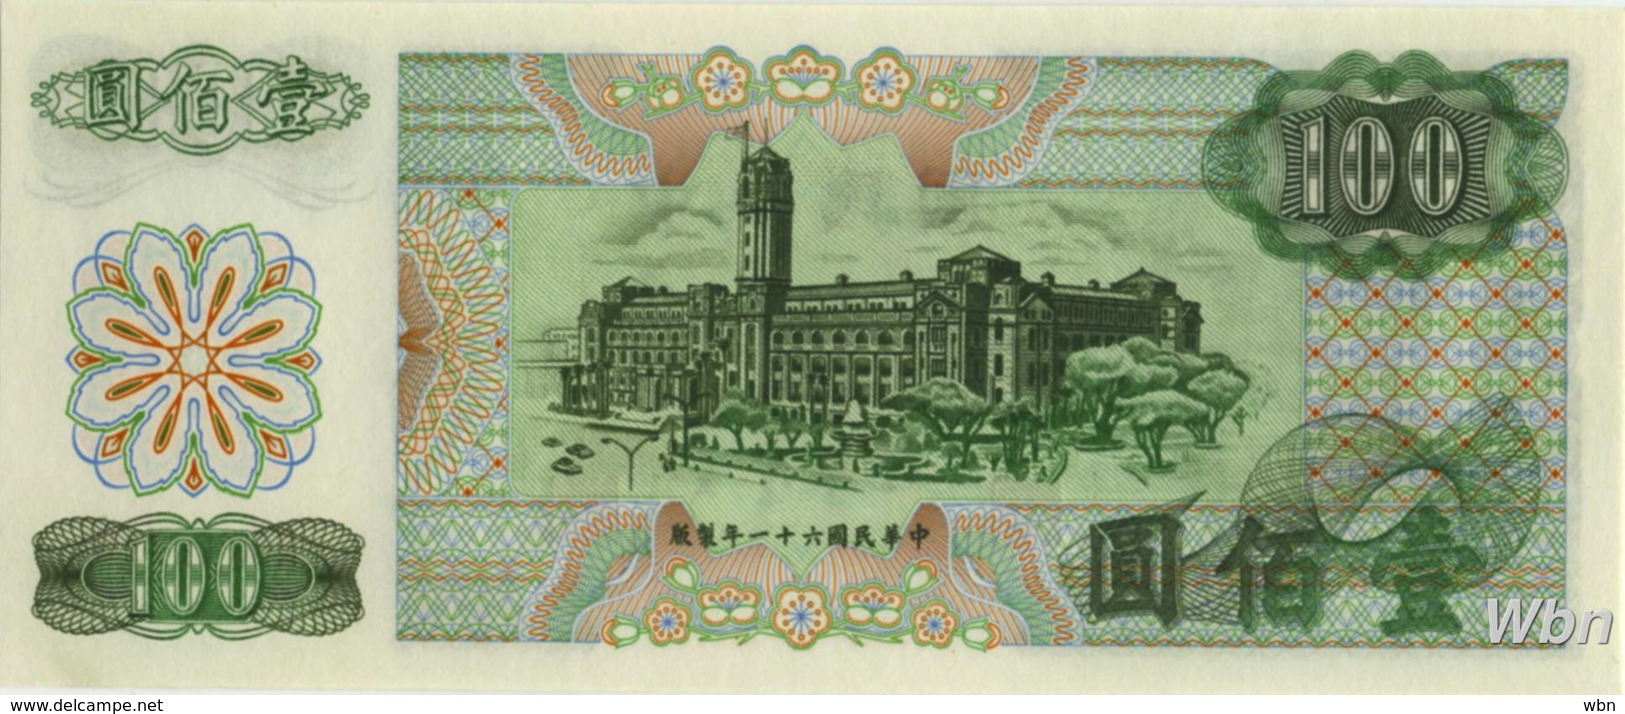 Taiwan 100 NT$ (P1983) Letter A -UNC- - Taiwan